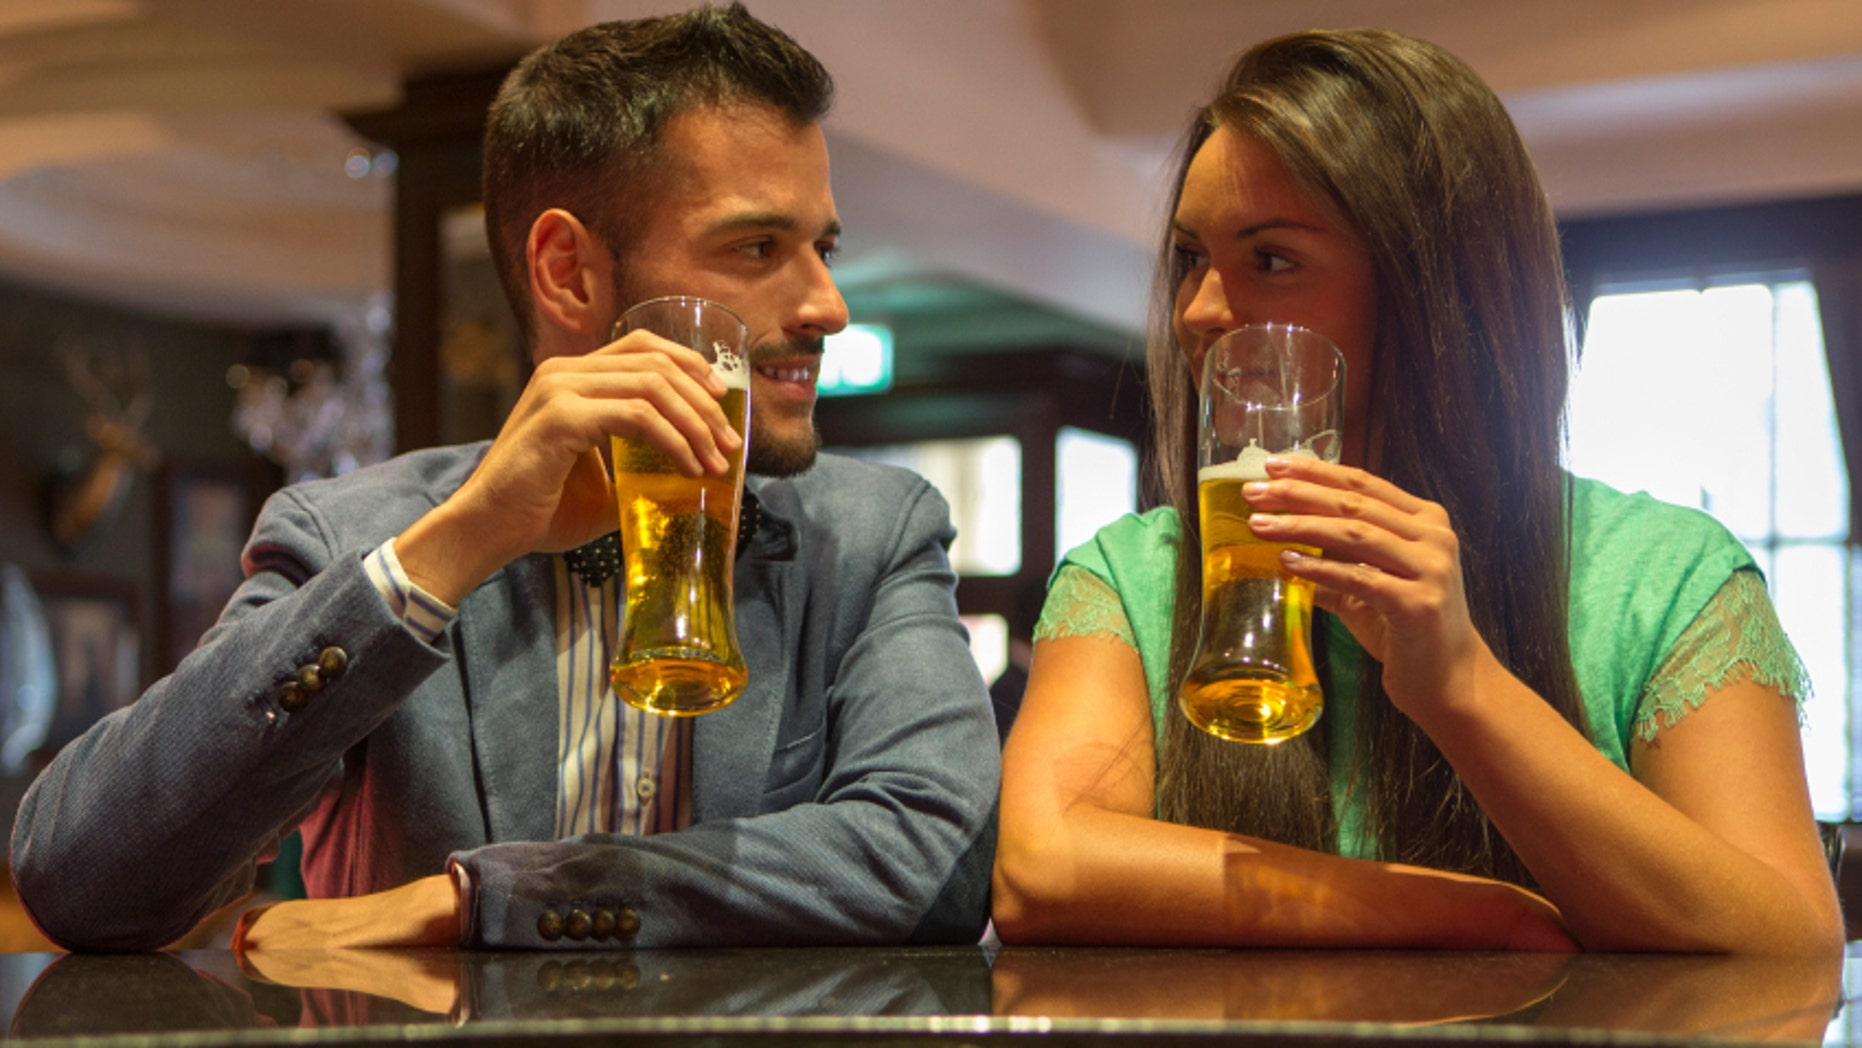 Men and women really do drink differently.